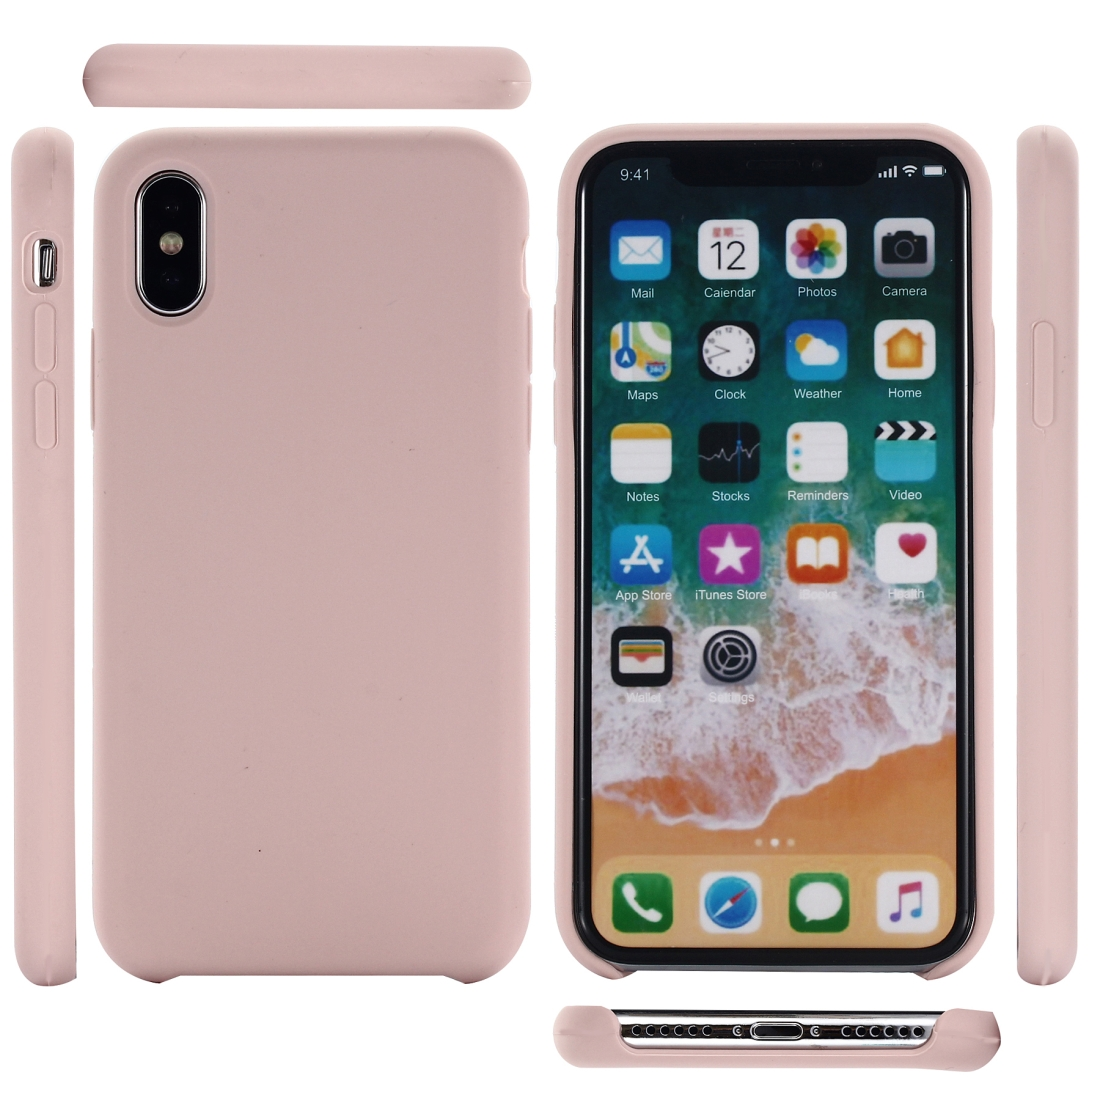 Four Corners Full Coverage Liquid Silicone Protective Case Back Cover for iPhone XR 6.1 inch (Rose Gold)